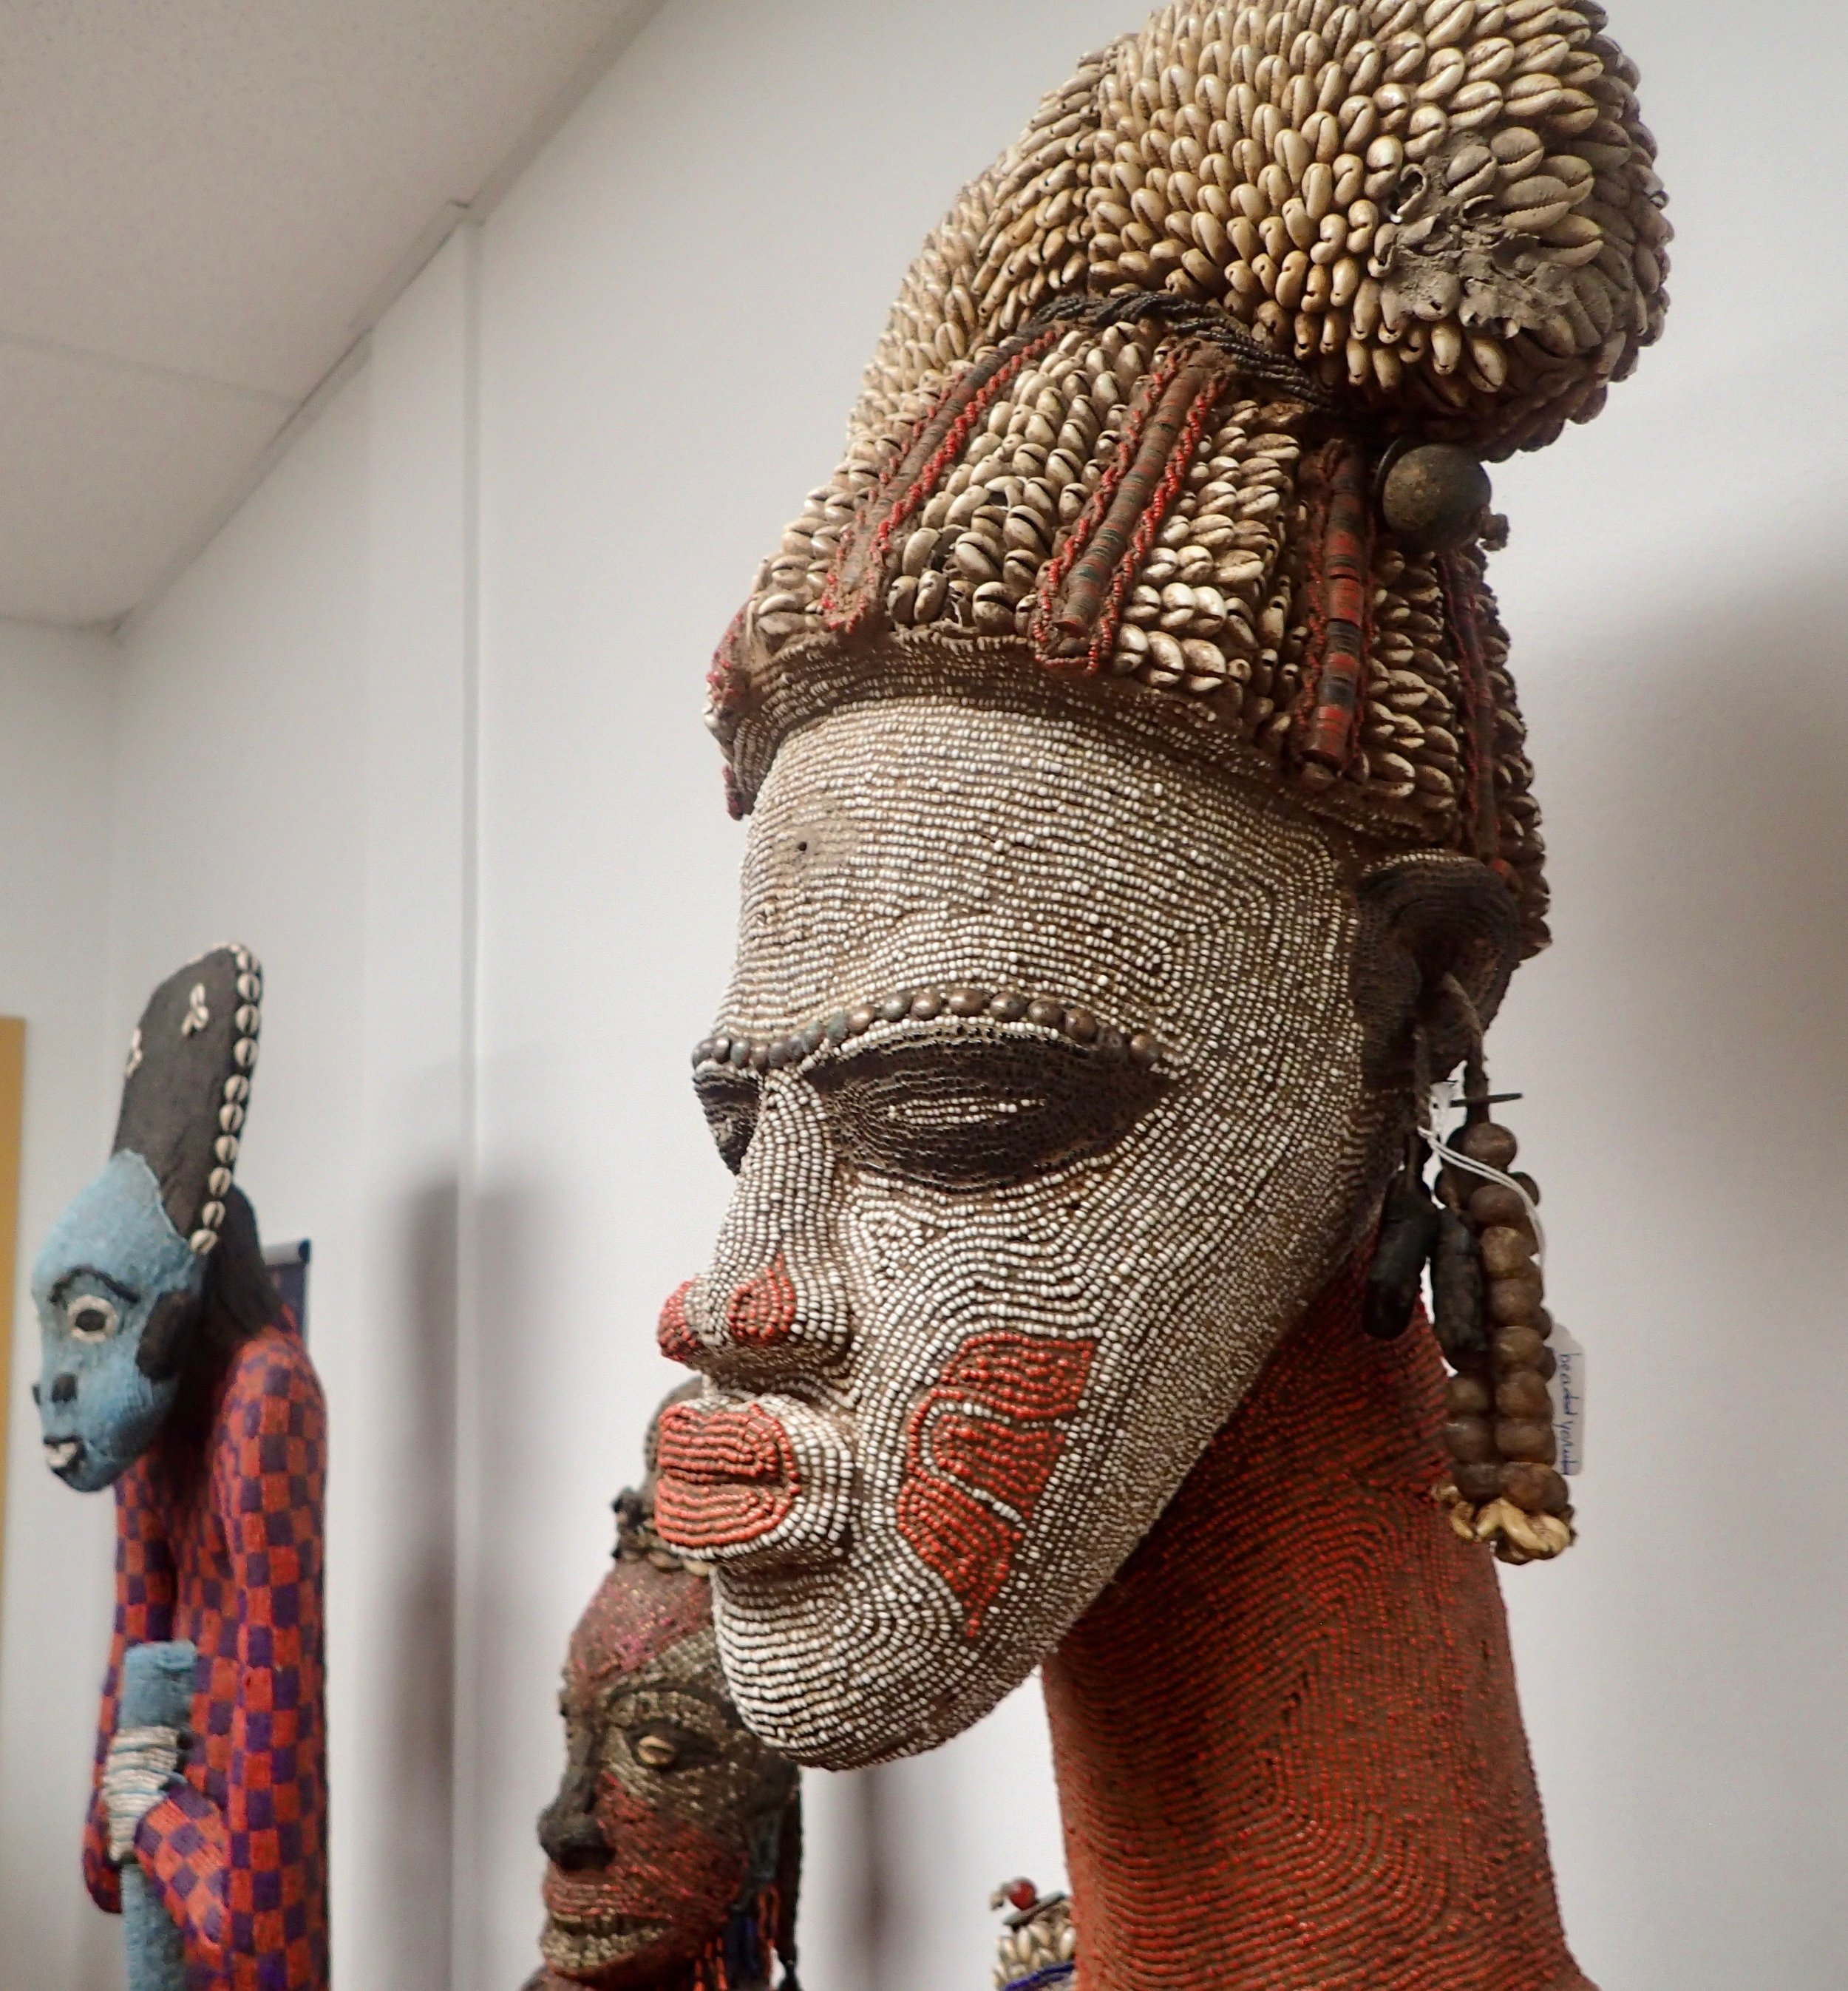 Look at the intricate beading. These are no plastic doodads. The beads are made from shells and other natural materials.